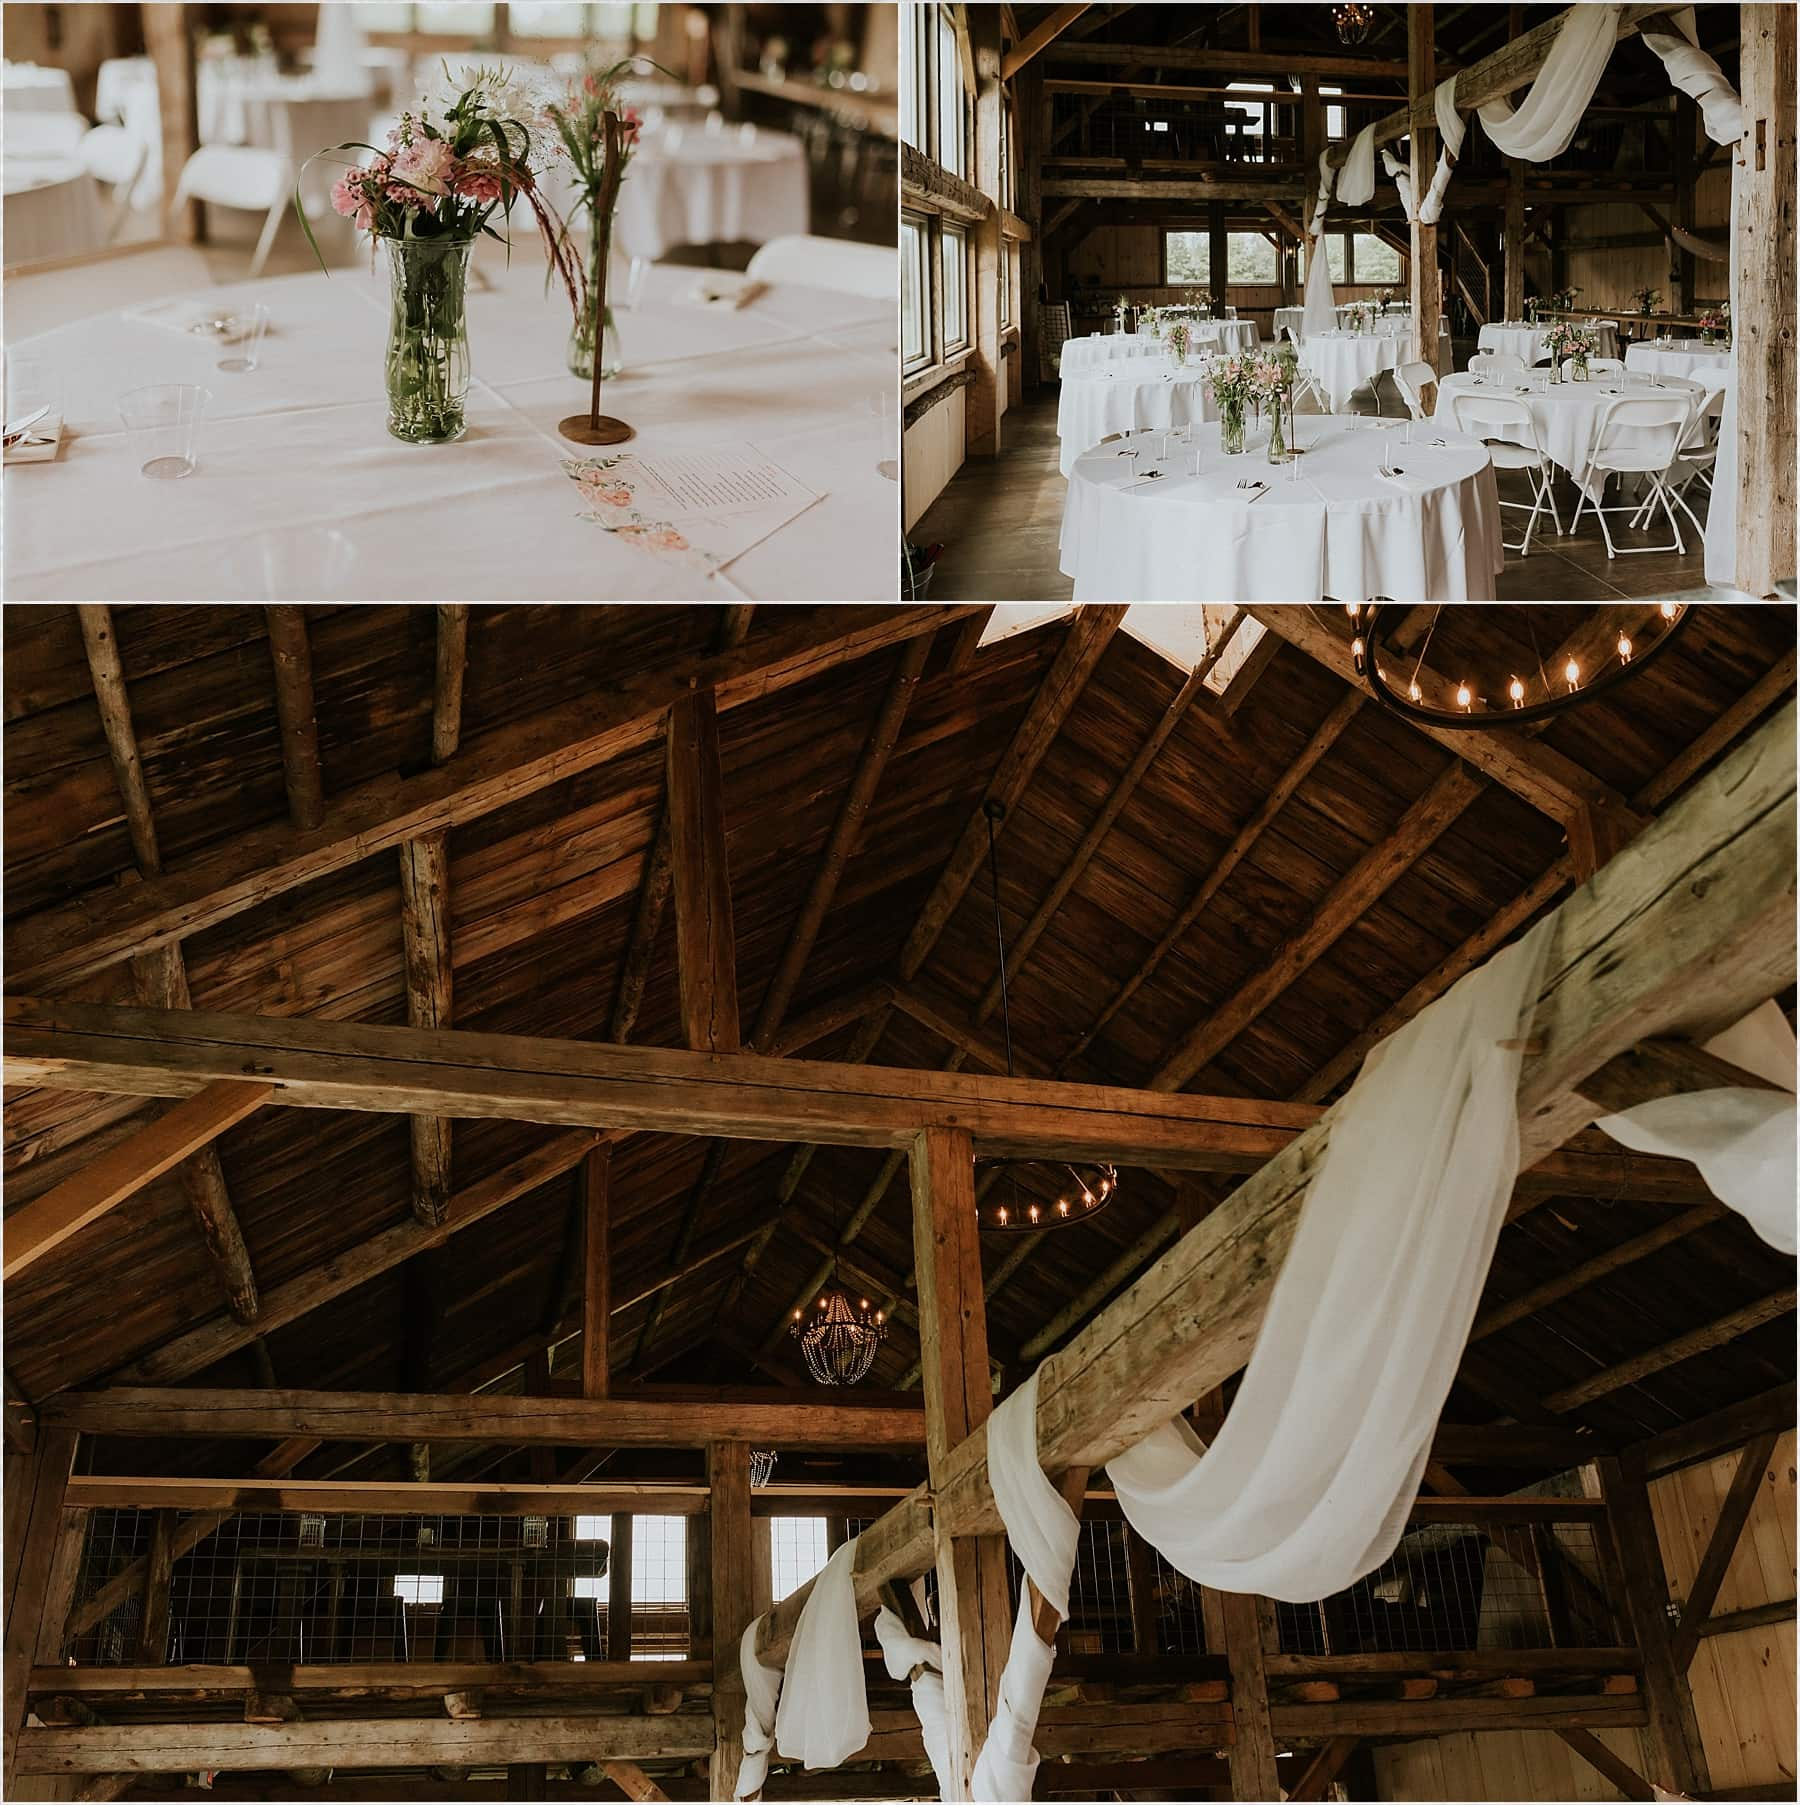 5 birds farm,New England wedding photographer,New England weddings,Vermont couples photography,Vermont wedding,Vermont wedding photographer,summer wedding,woodstock vermont,